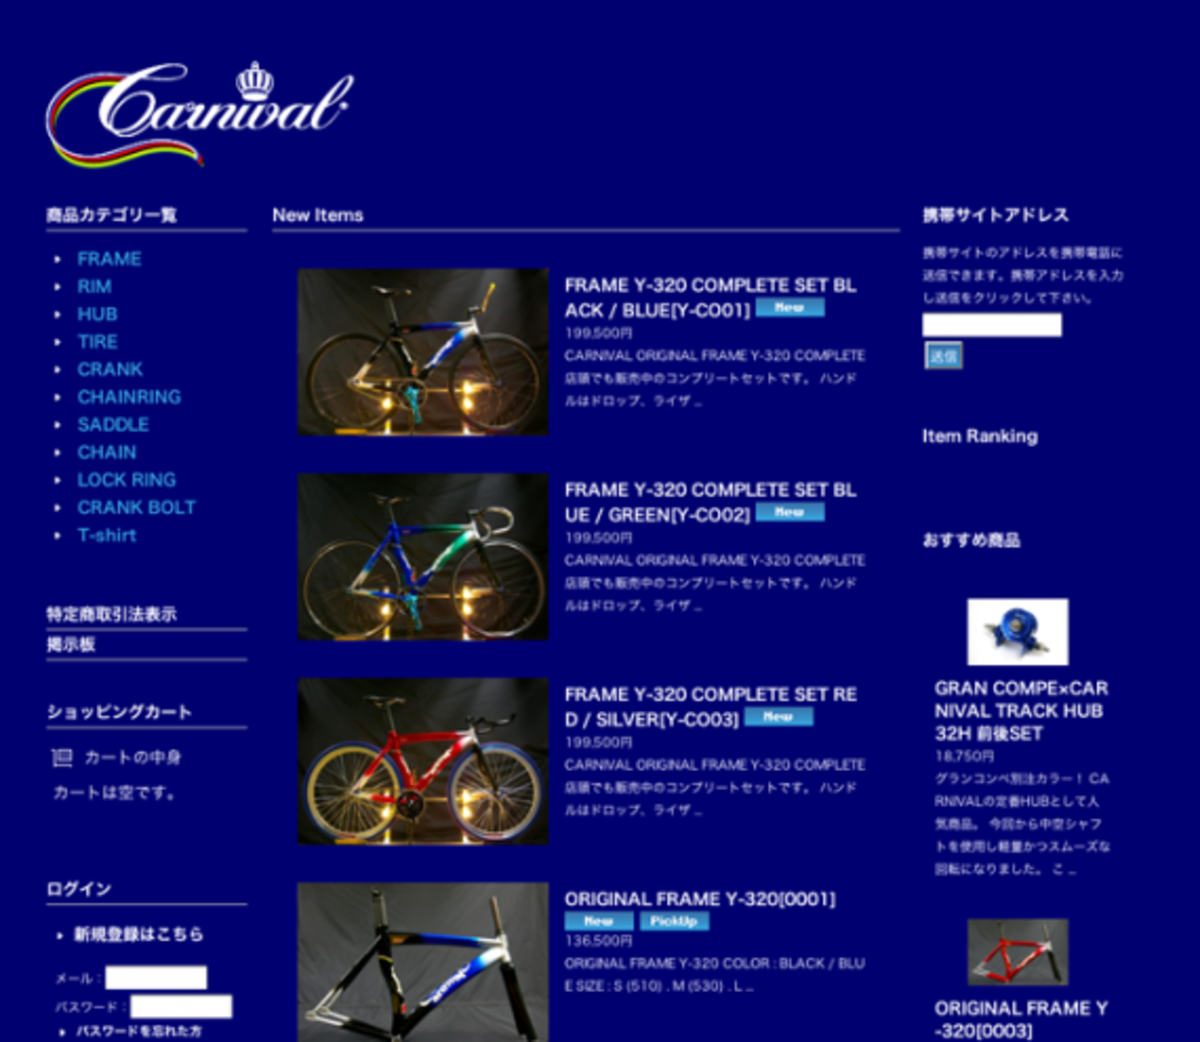 Carnival Online Store